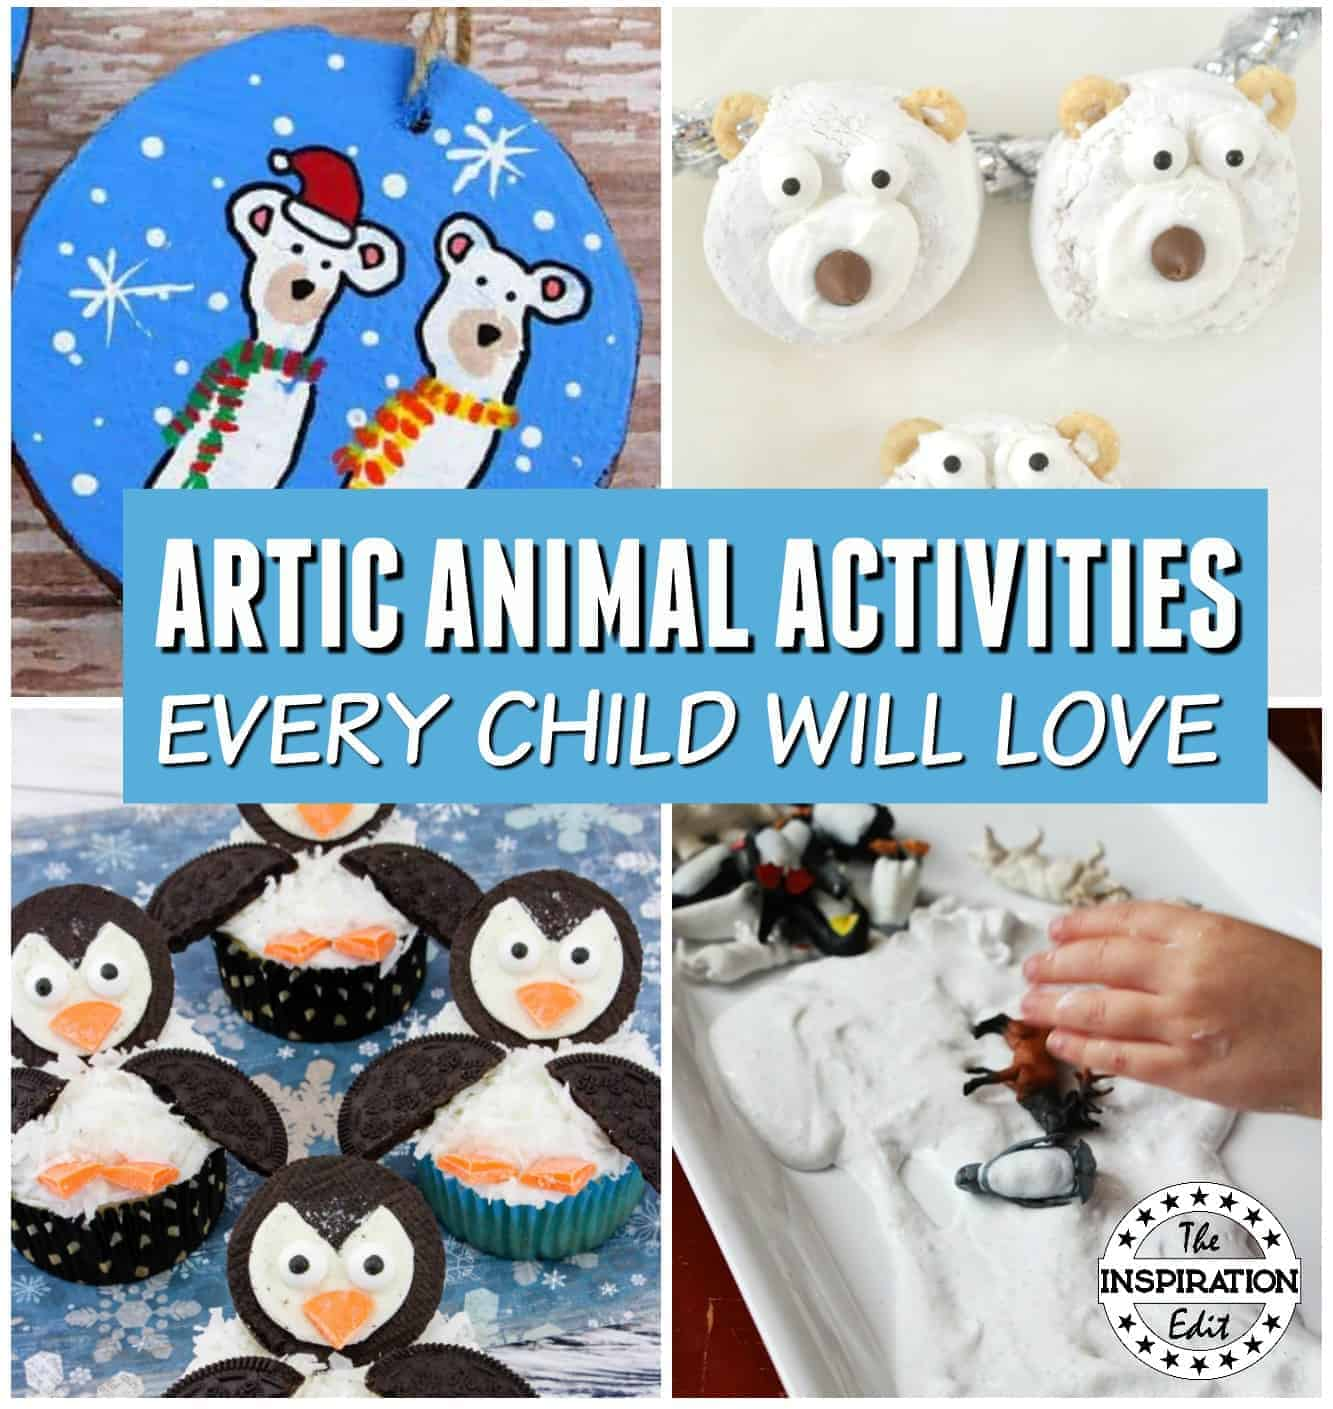 Artic Animal Activities for kids to enjoy